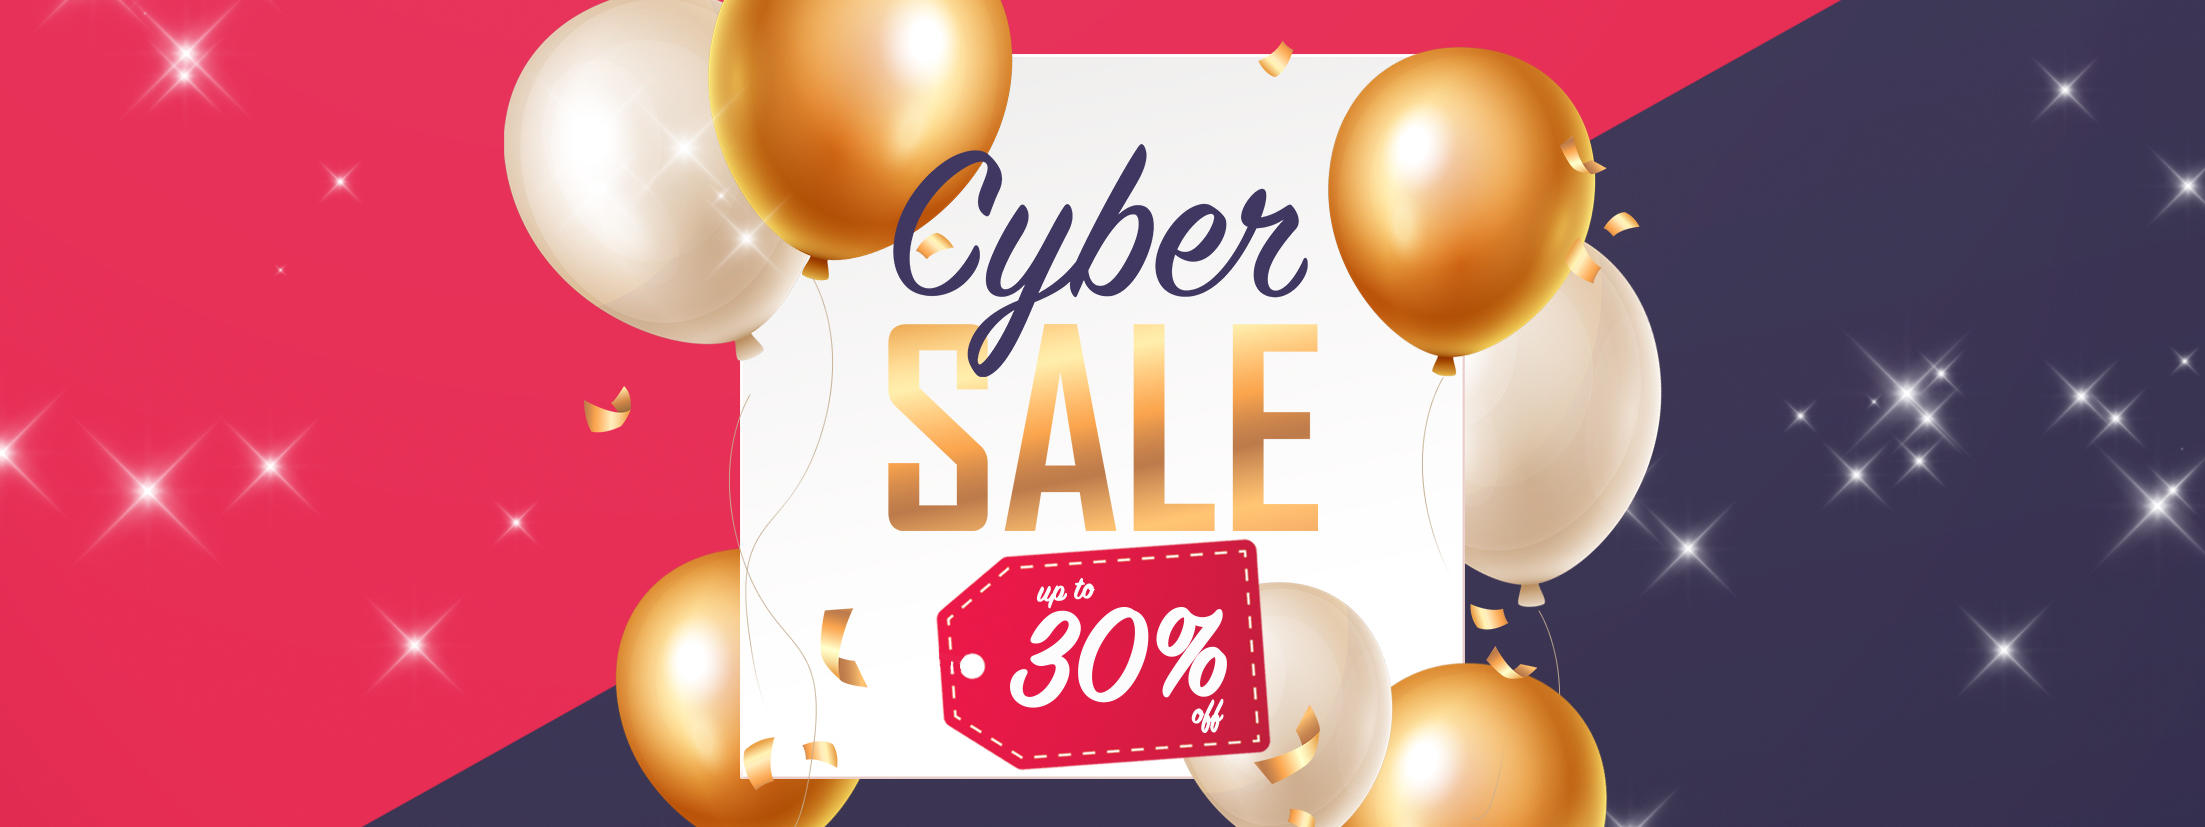 Cyber Sale Up to 30% OFF